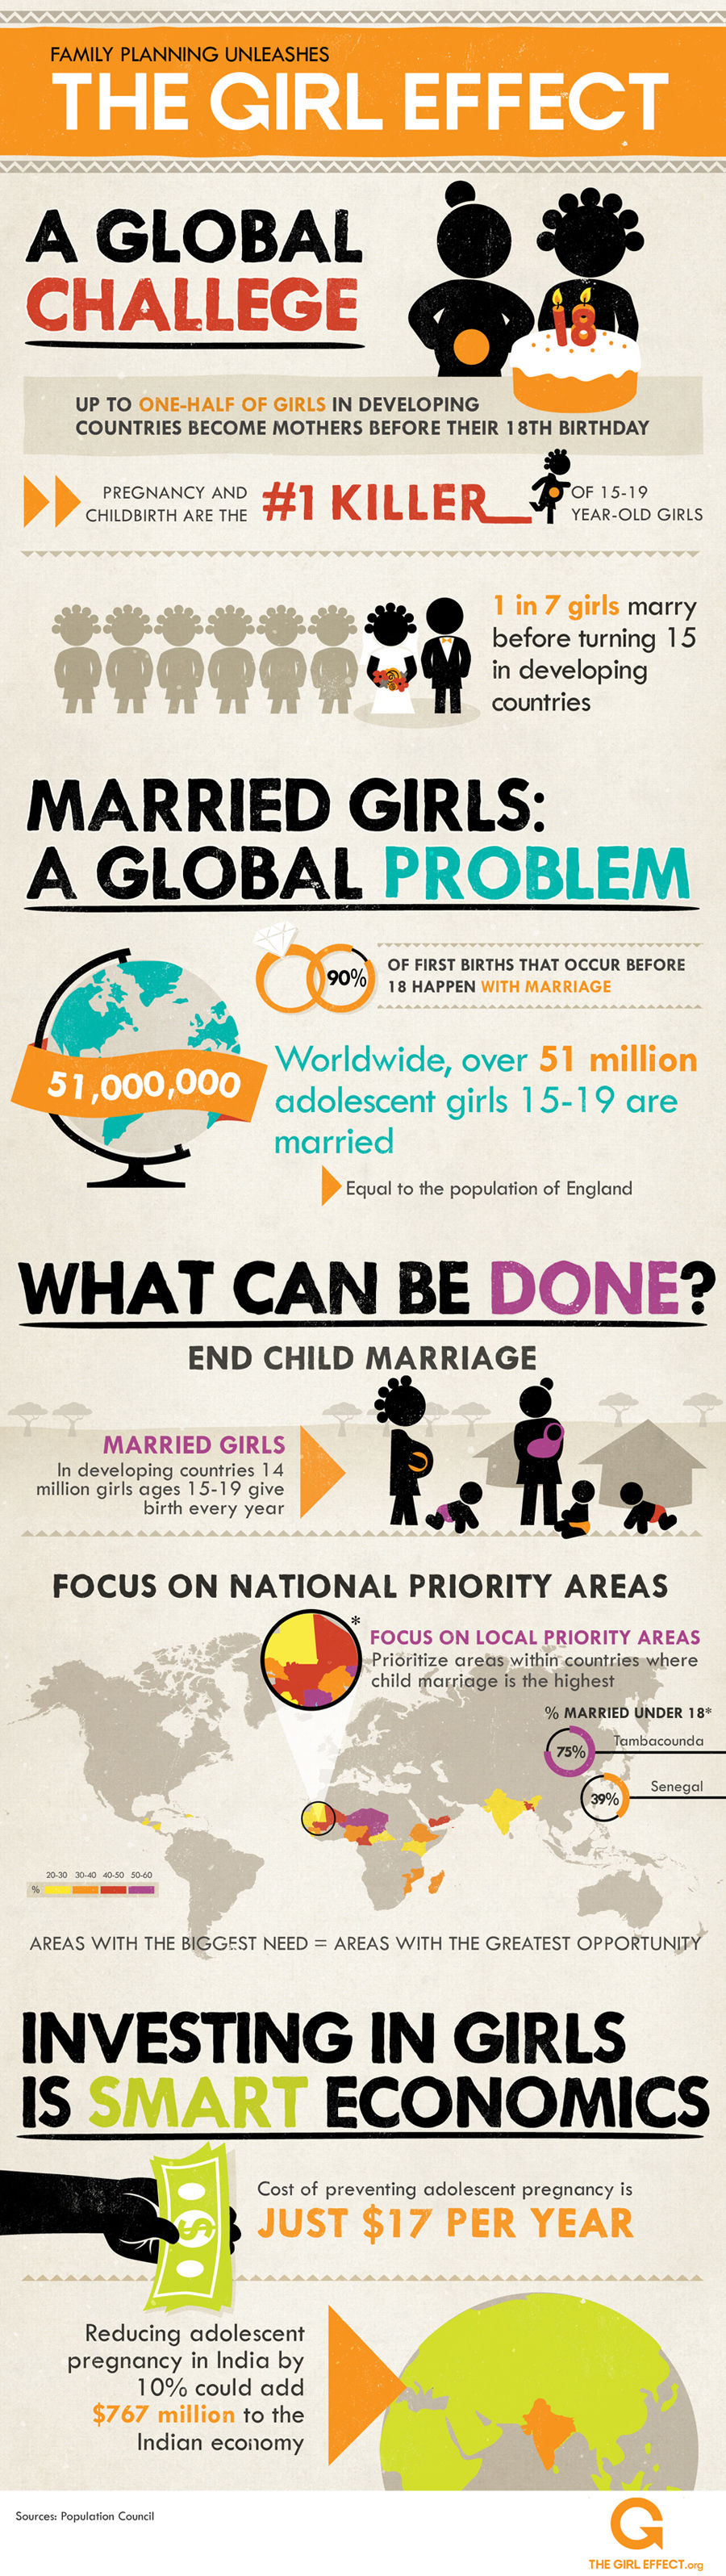 Family planning unleashes the girl effect infographic for Www family planning com